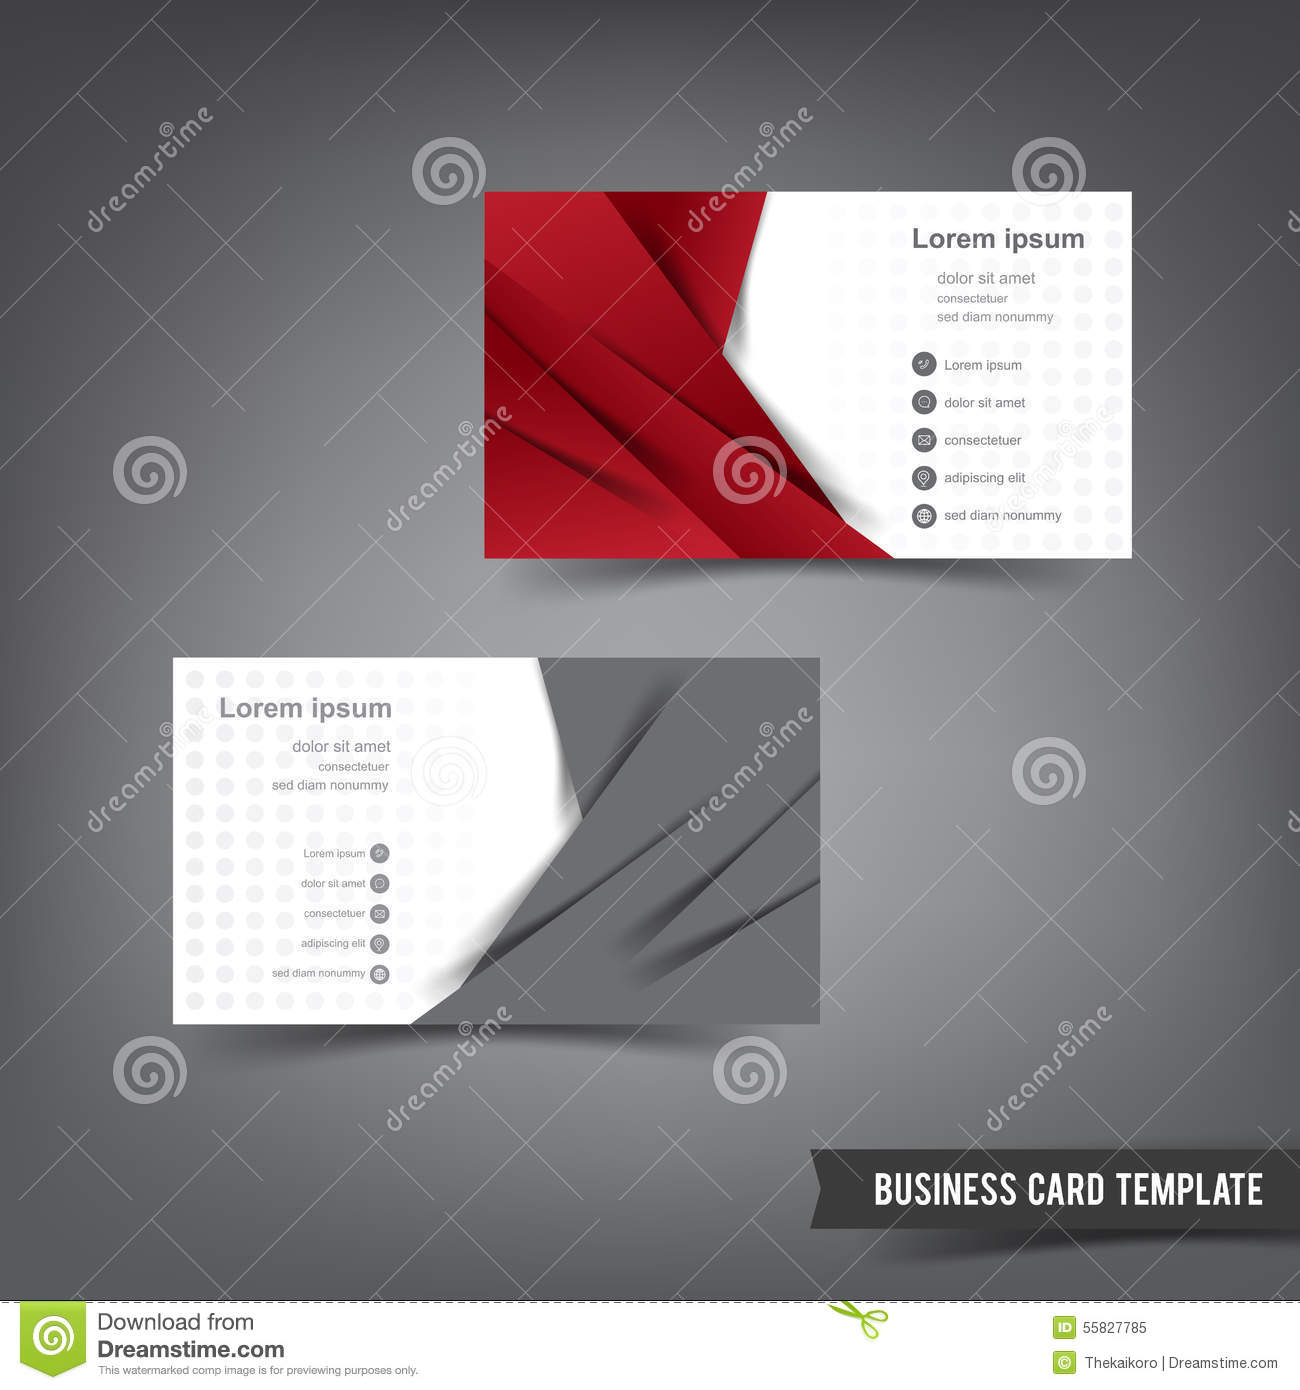 Business card template grey 28 images blue and gray business business card template grey business card template set 027 and grey layer overlab reheart Choice Image